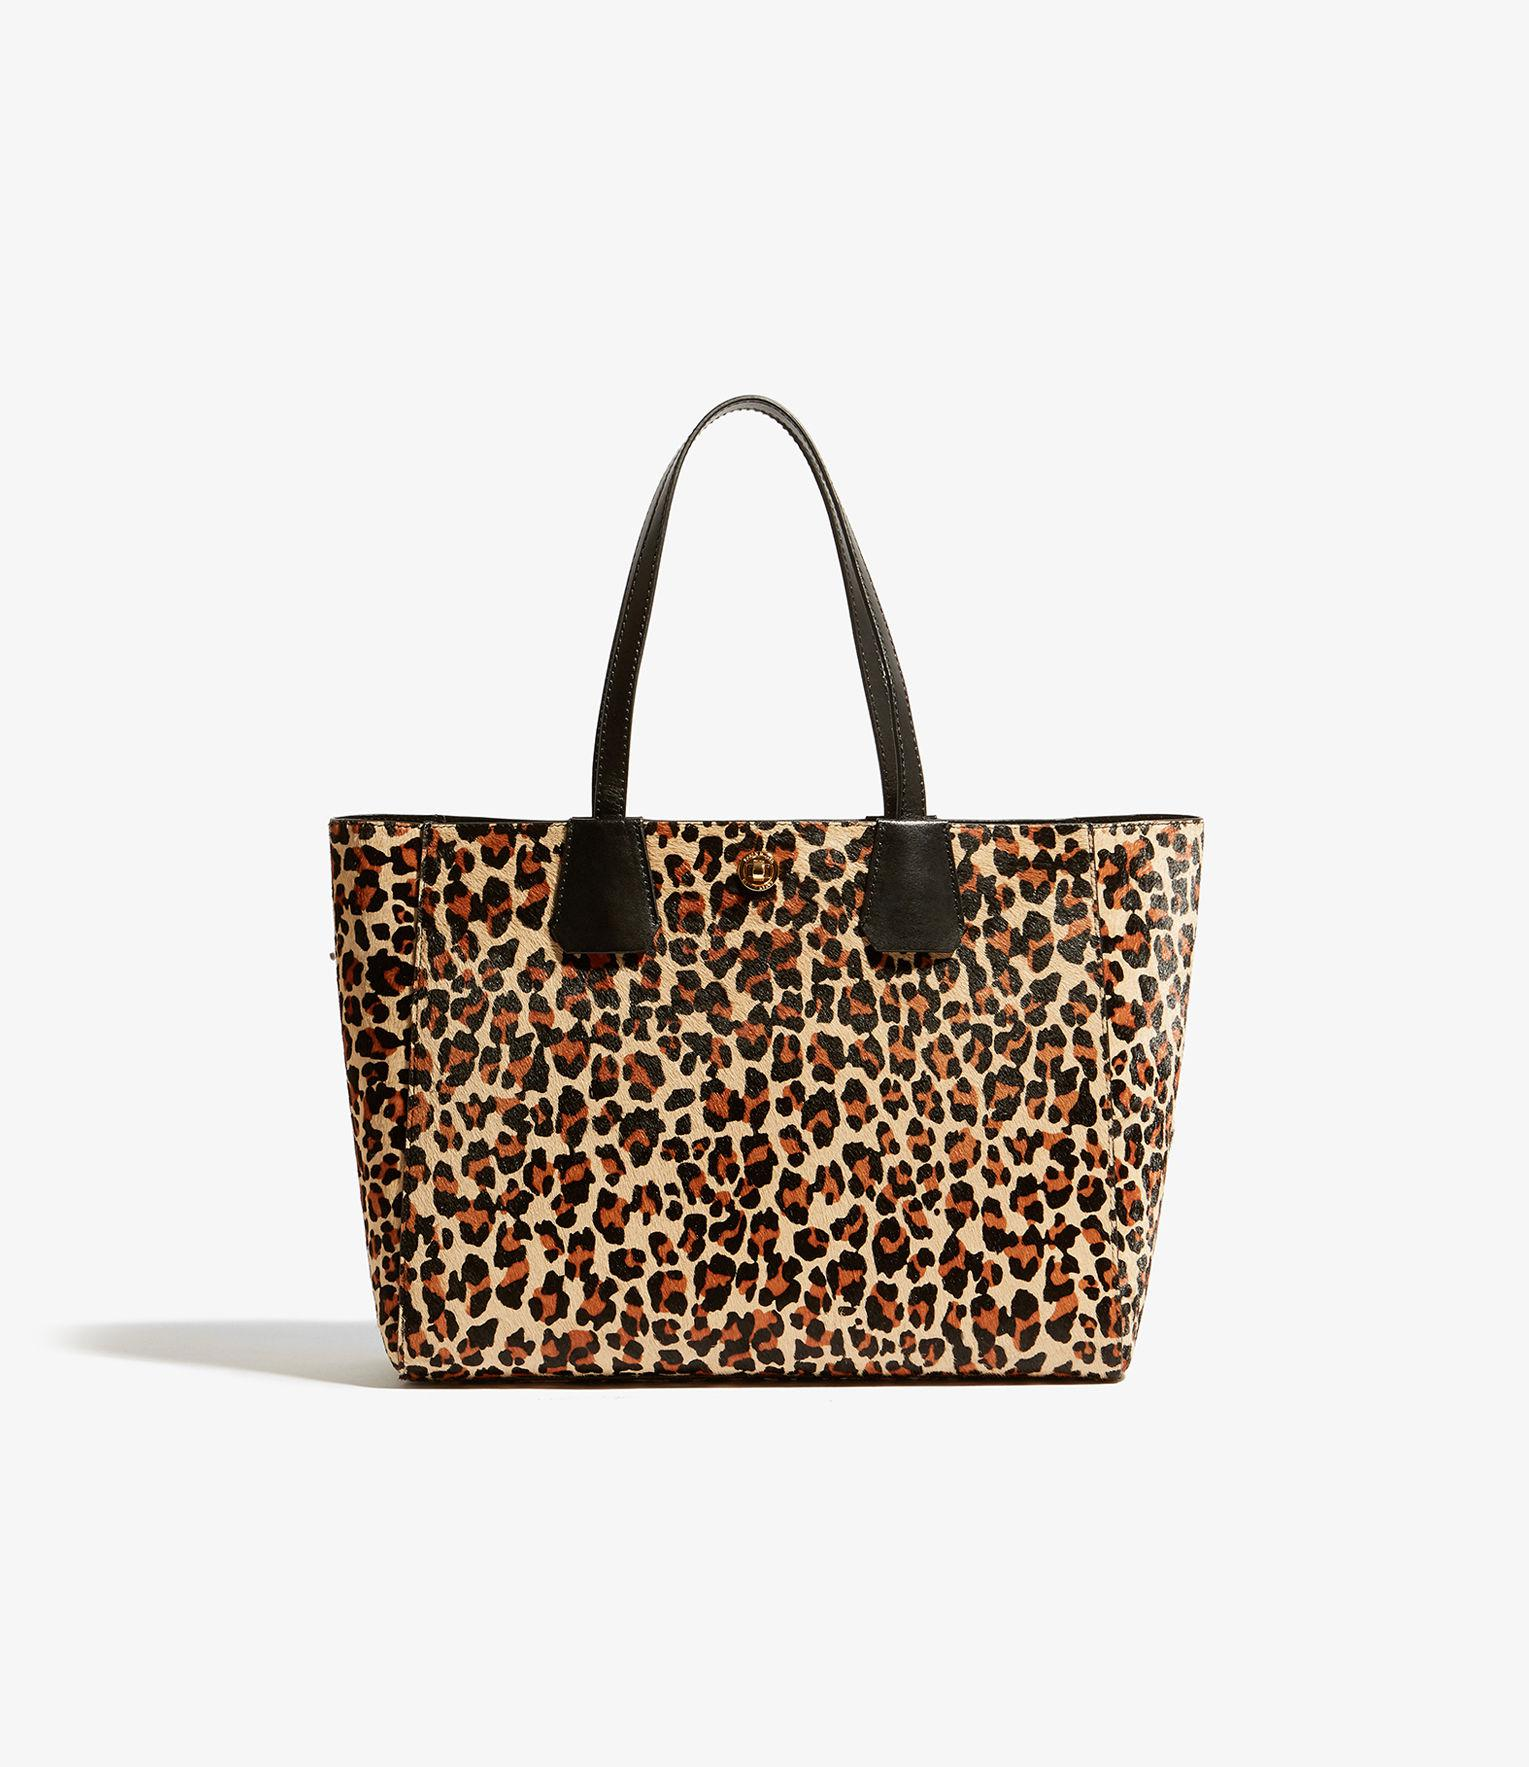 ba23fe1cd1 Karen Millen Leopard East West Tote Bag in Brown - Lyst